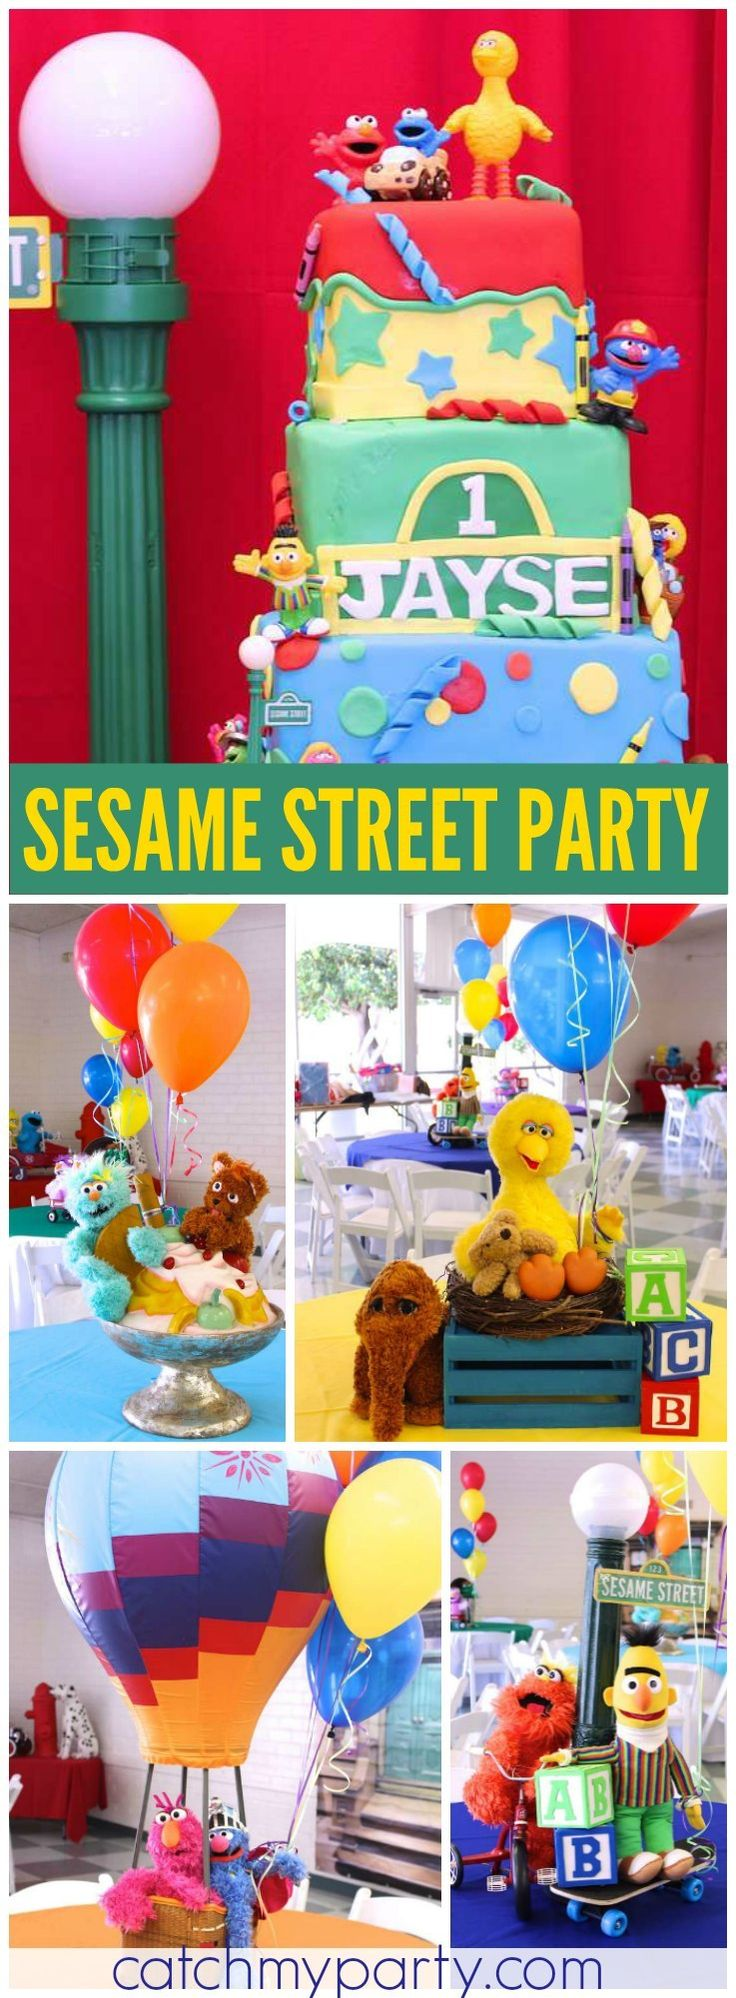 Elmo 1st birthday party ideas birthday party sesamestreet - Sesame Street Birthday Sesame Street Sesame Street Partysesame